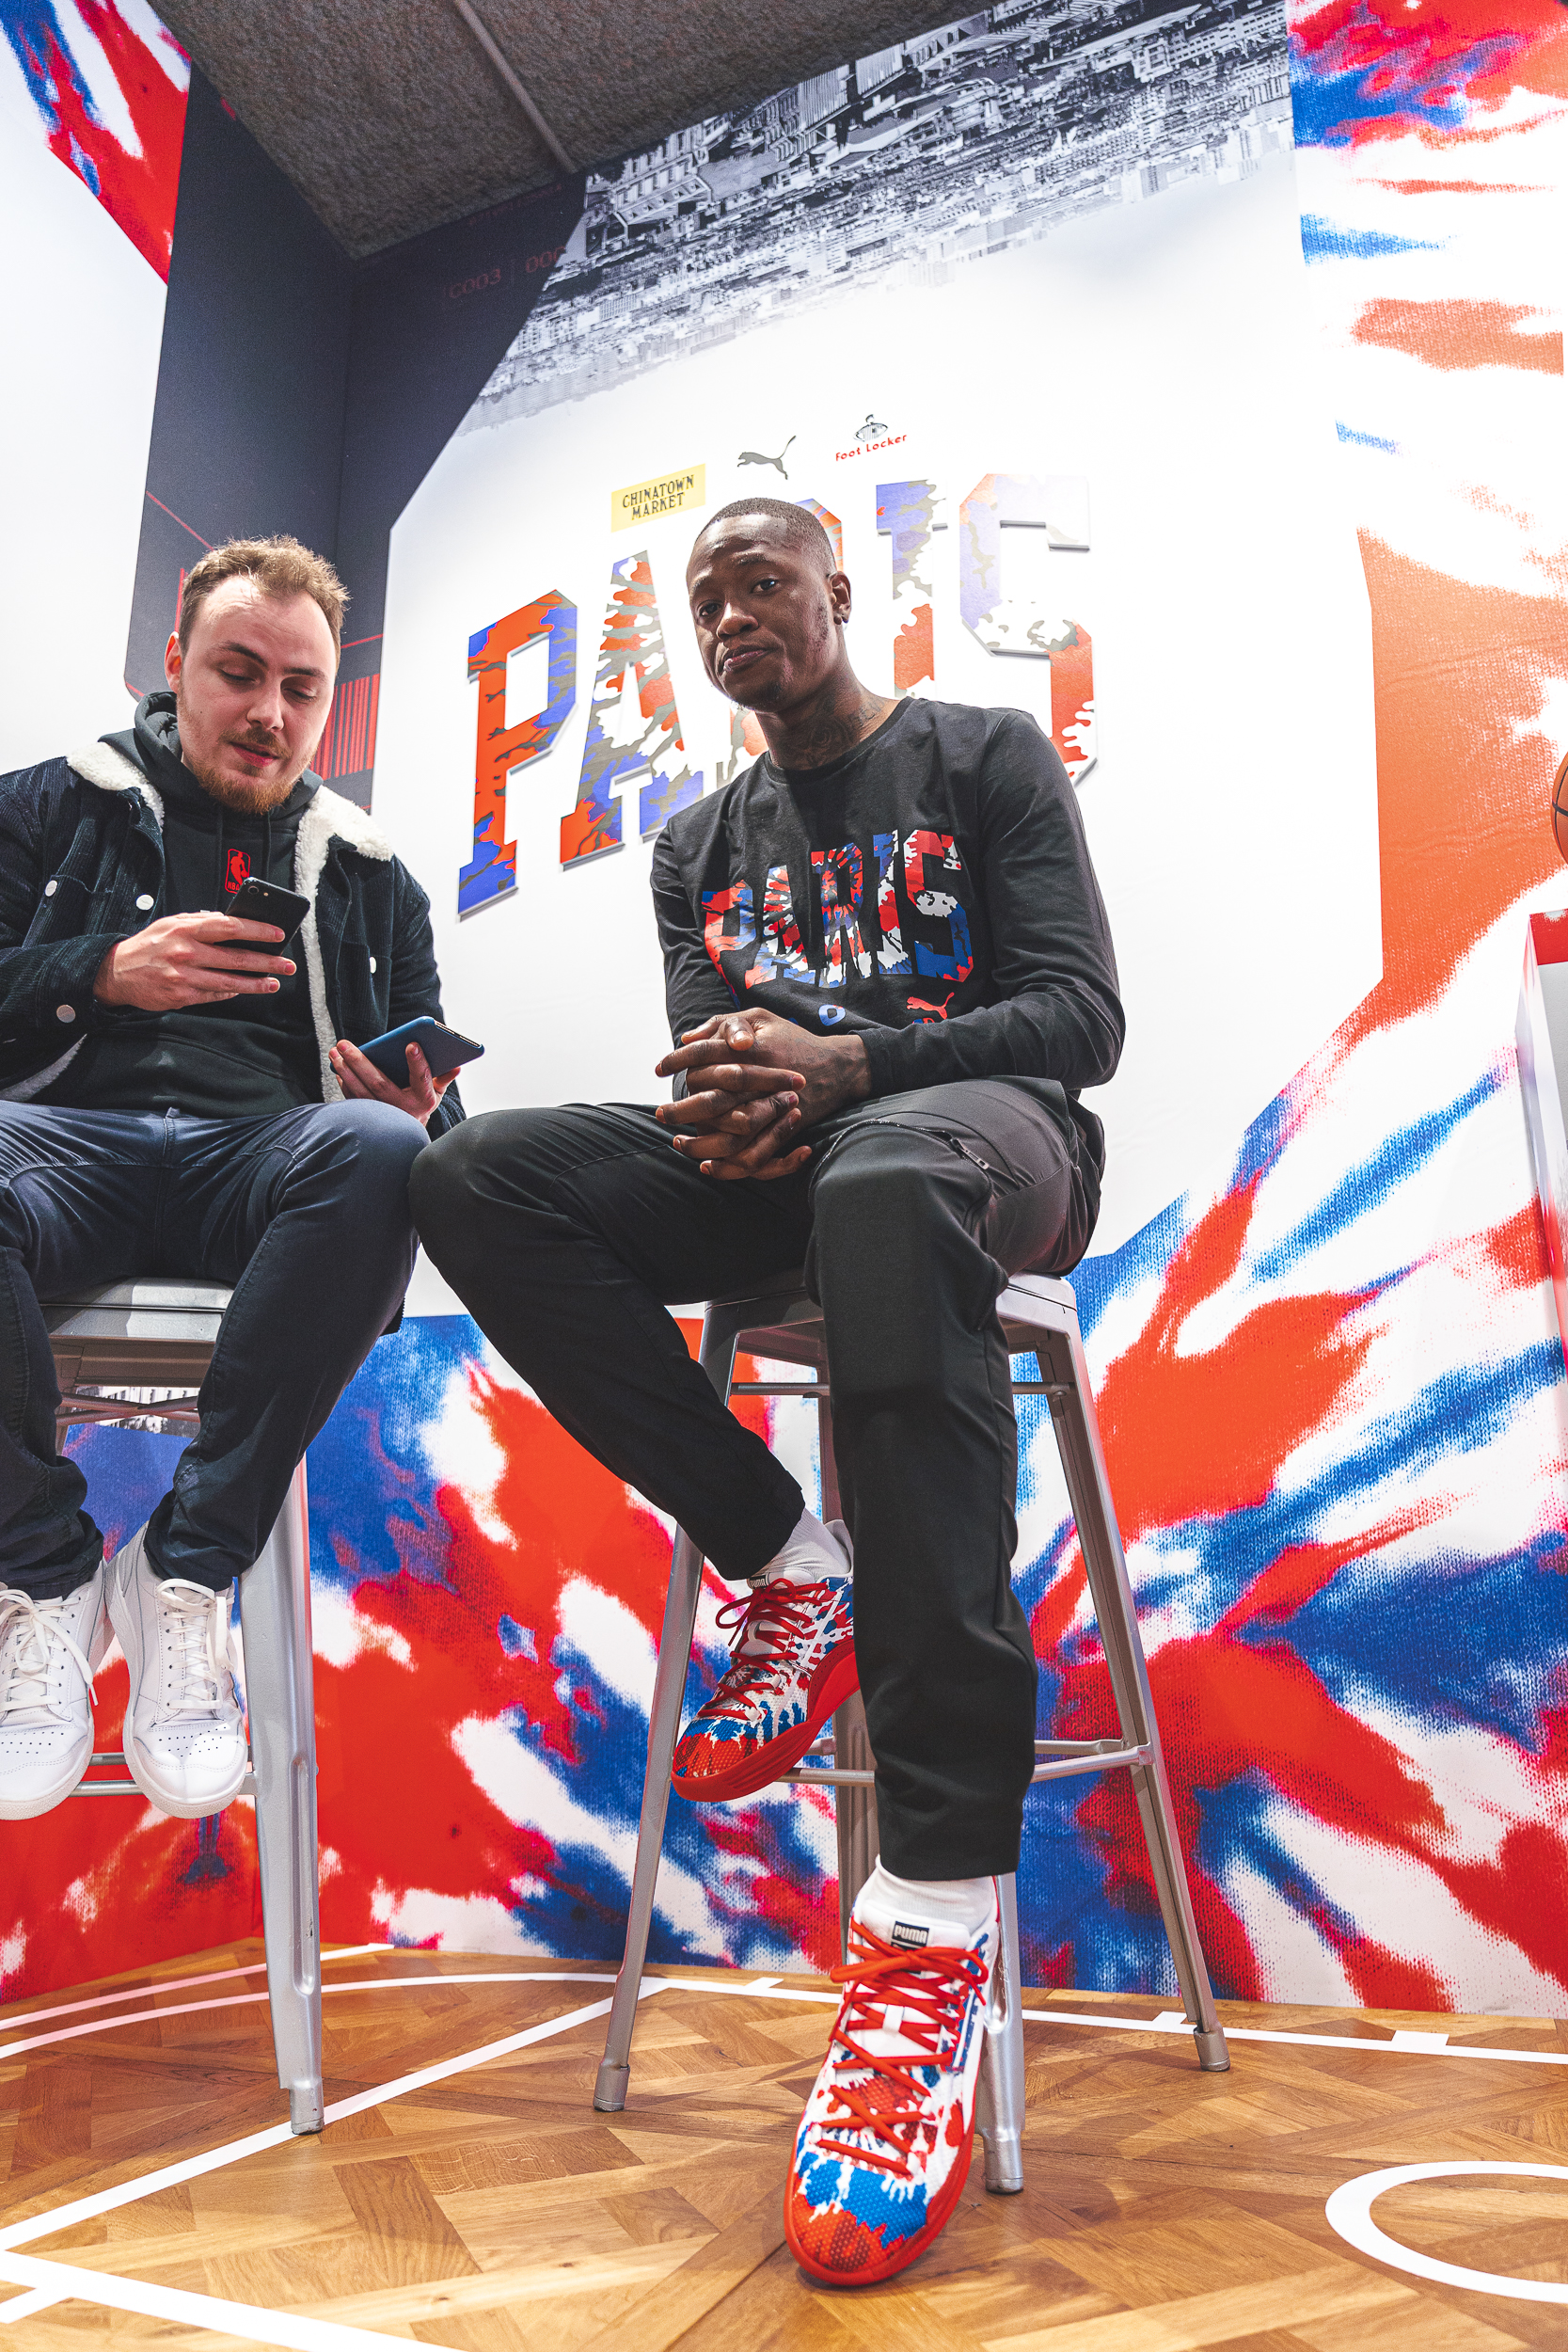 [:fr]ÉVÉNEMENT TERRY ROZIER X PUMA X CHINATOWN X FOOT LOCKER[:en]EVENT TERRY ROZIER X PUMA X CHINATOWN X FOOT LOCKER[:]